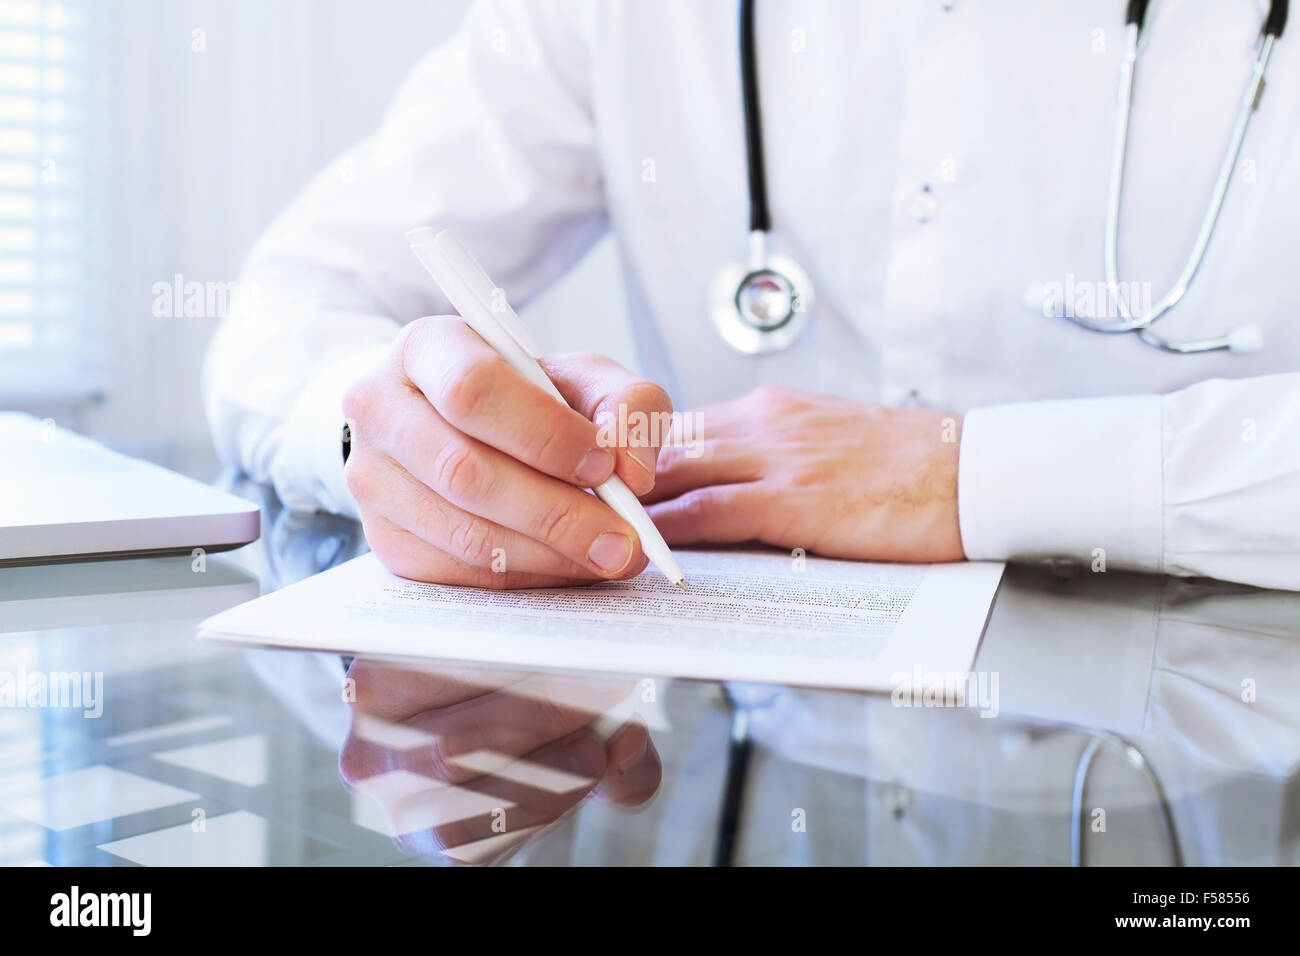 medical diagnose, hands of doctor writing in clinical record - Stock Image